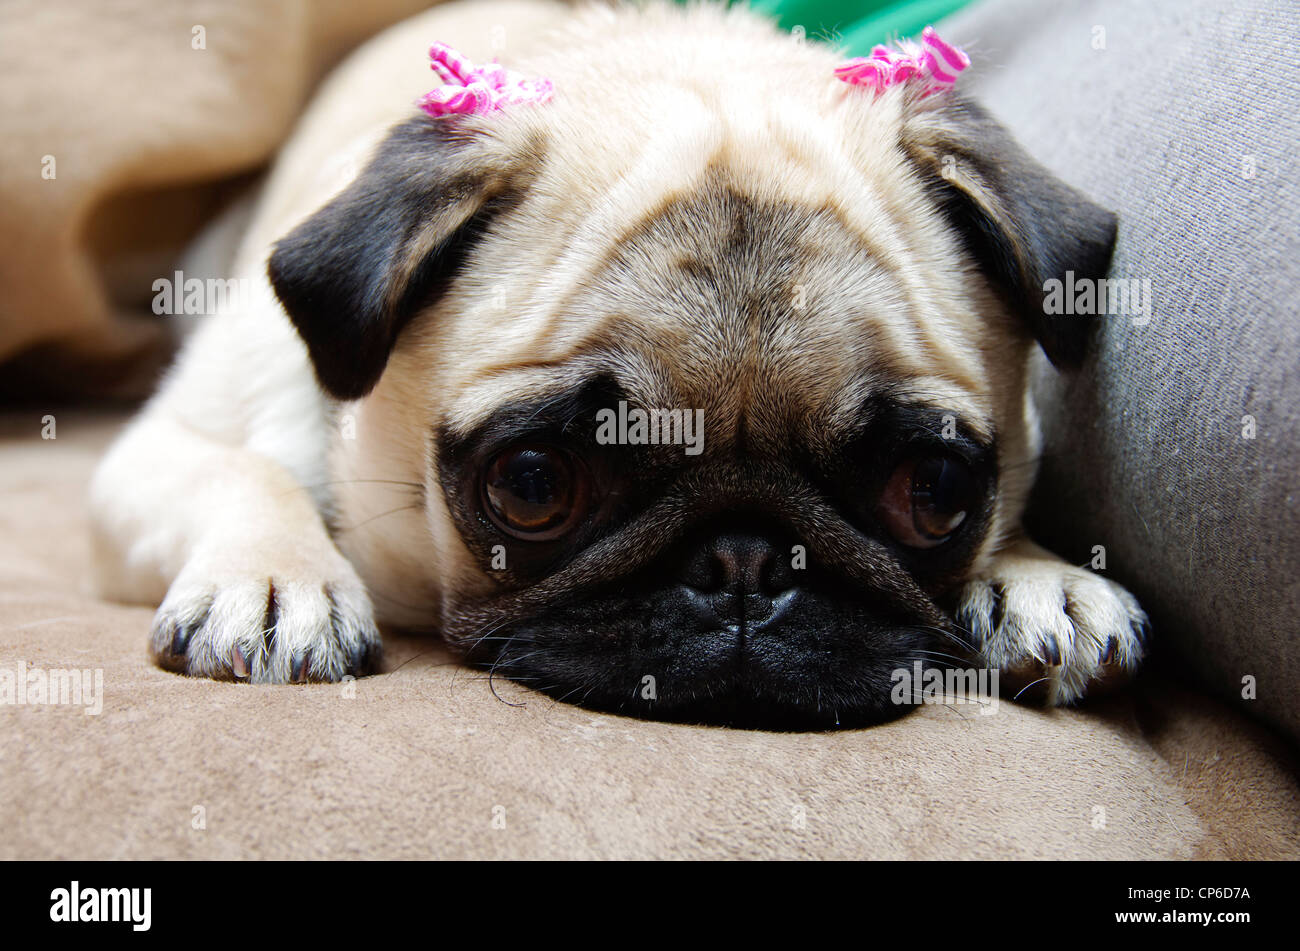 A one year old female fawn coloured pug puppy with pink bows on her ears, head down, looking sad. - Stock Image